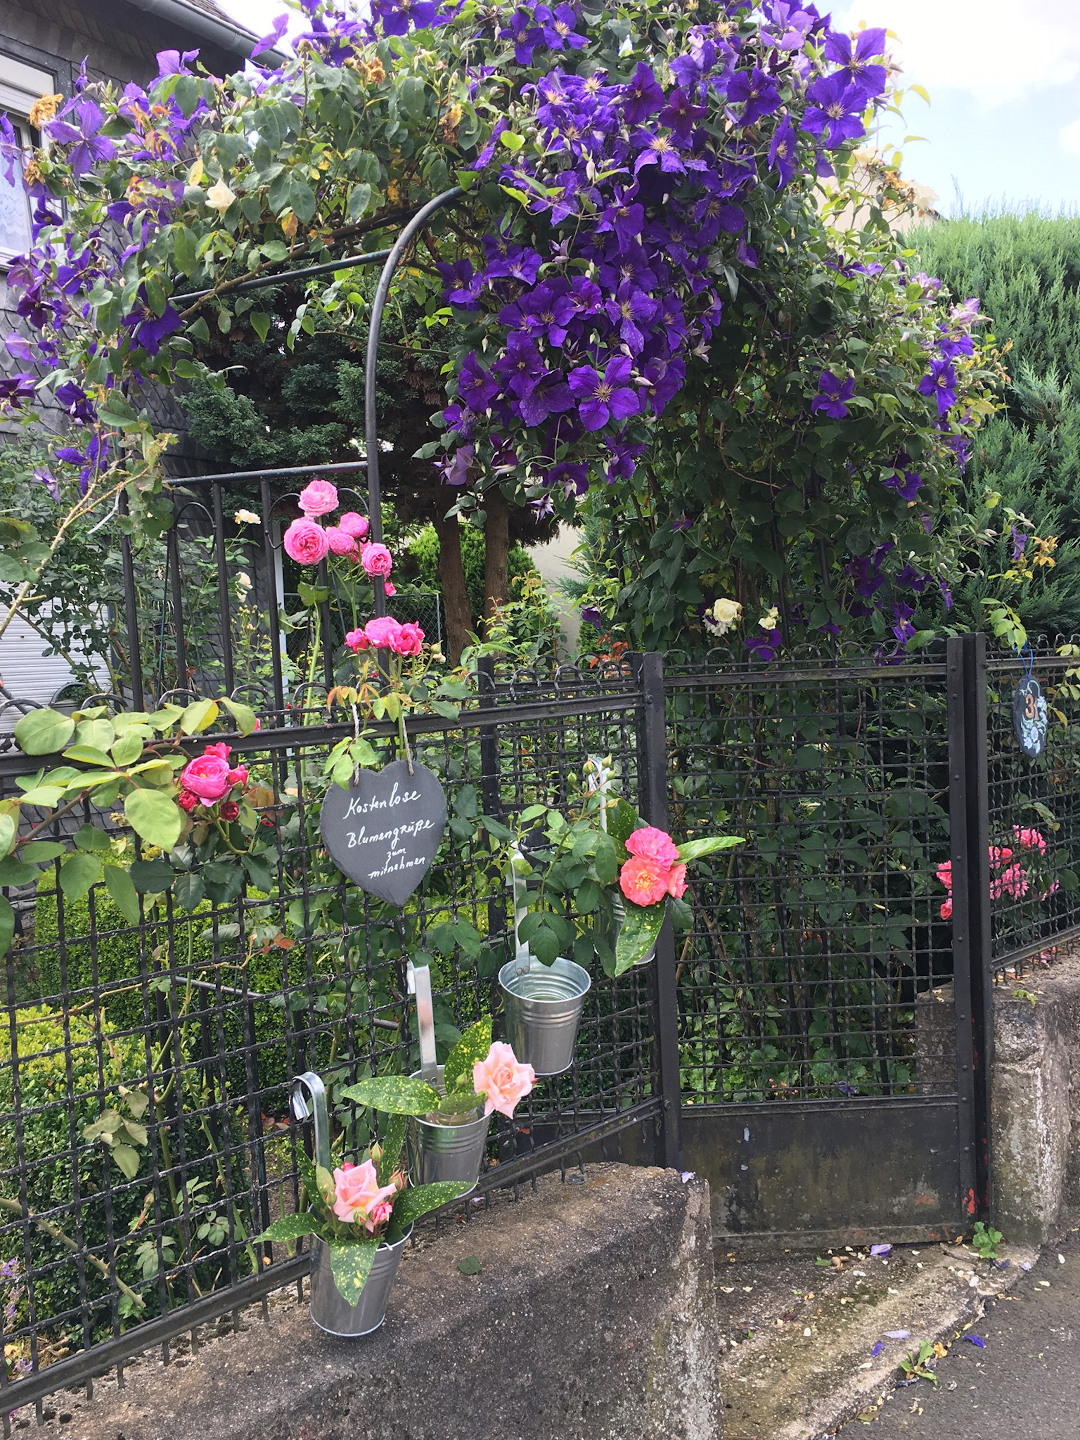 Free bouquets hanging on the garden fence for anyone passing by to take away